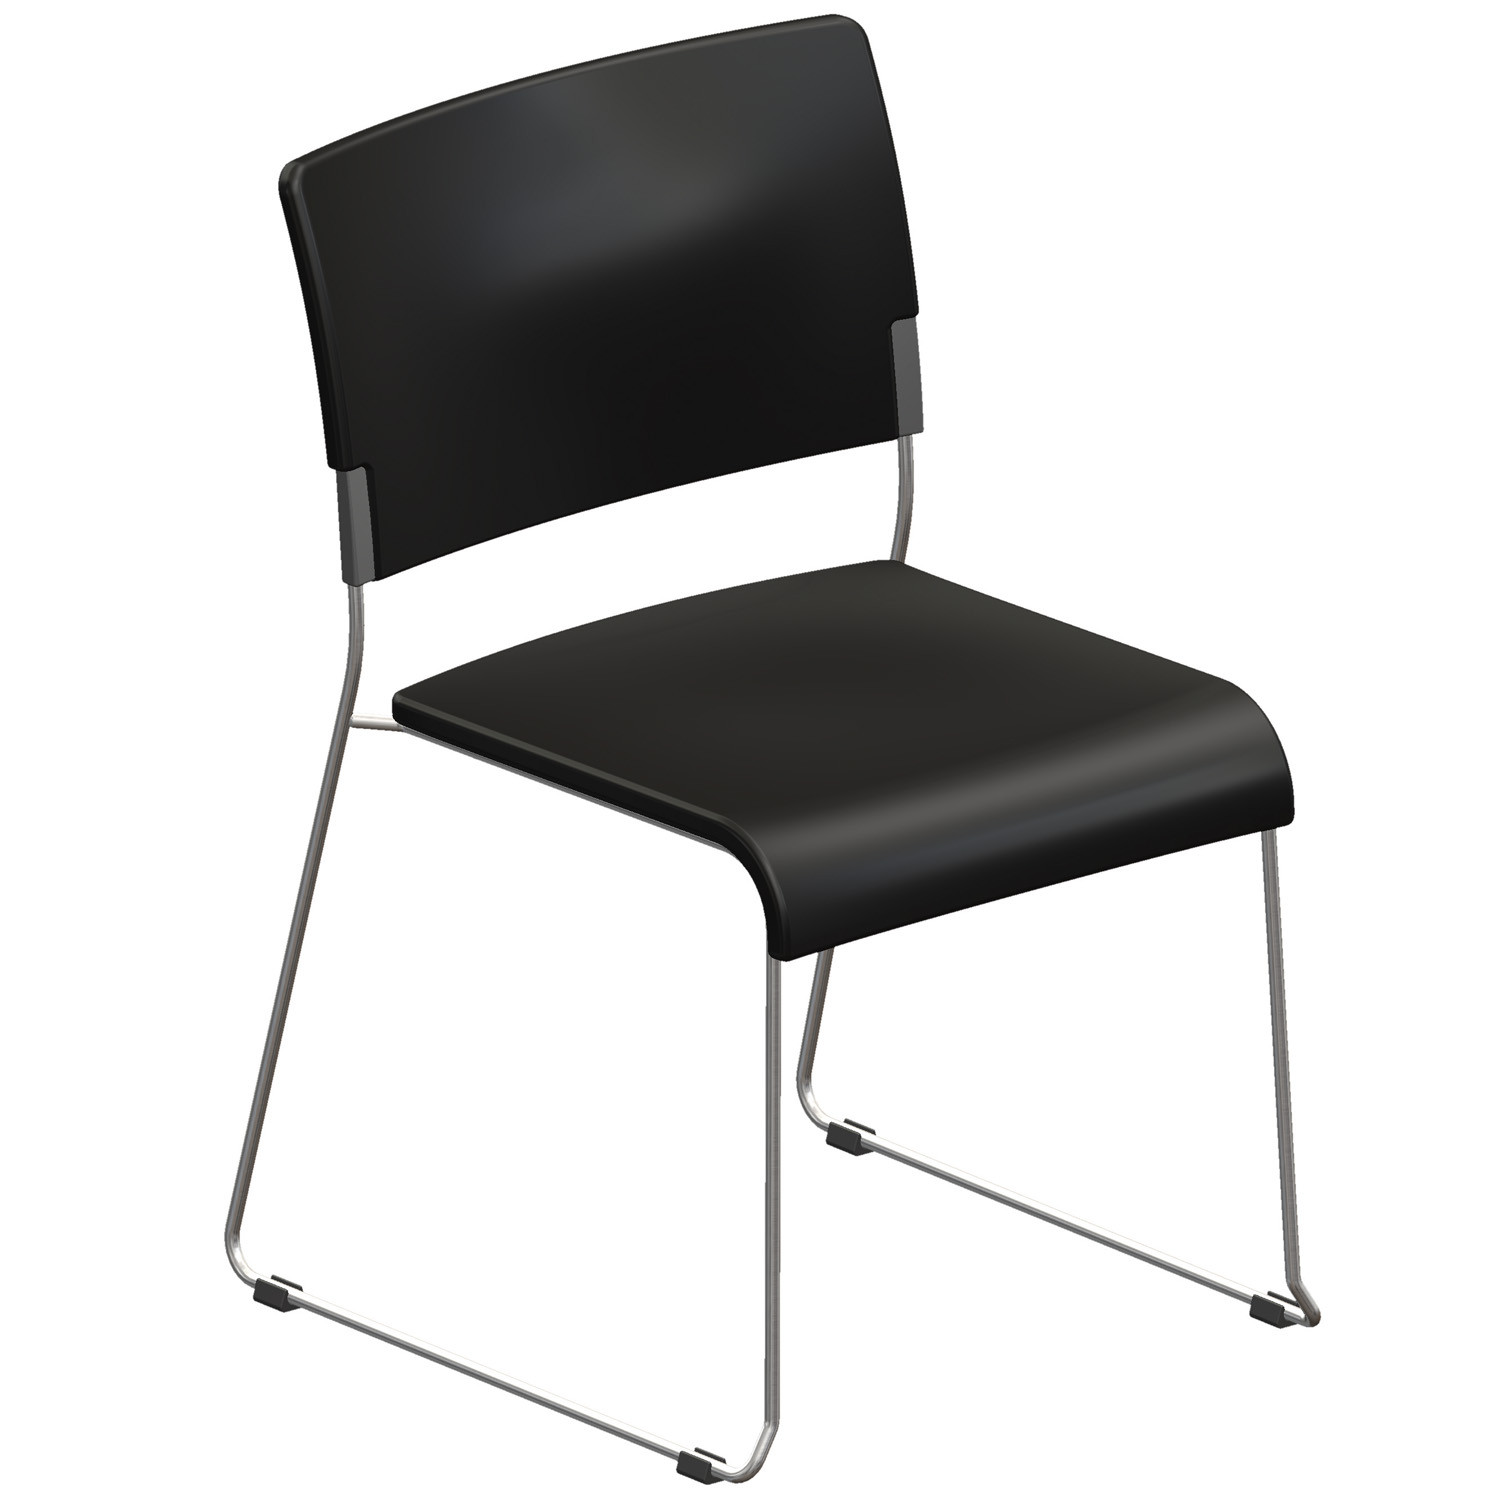 Foxy Cantilever Chair without arms